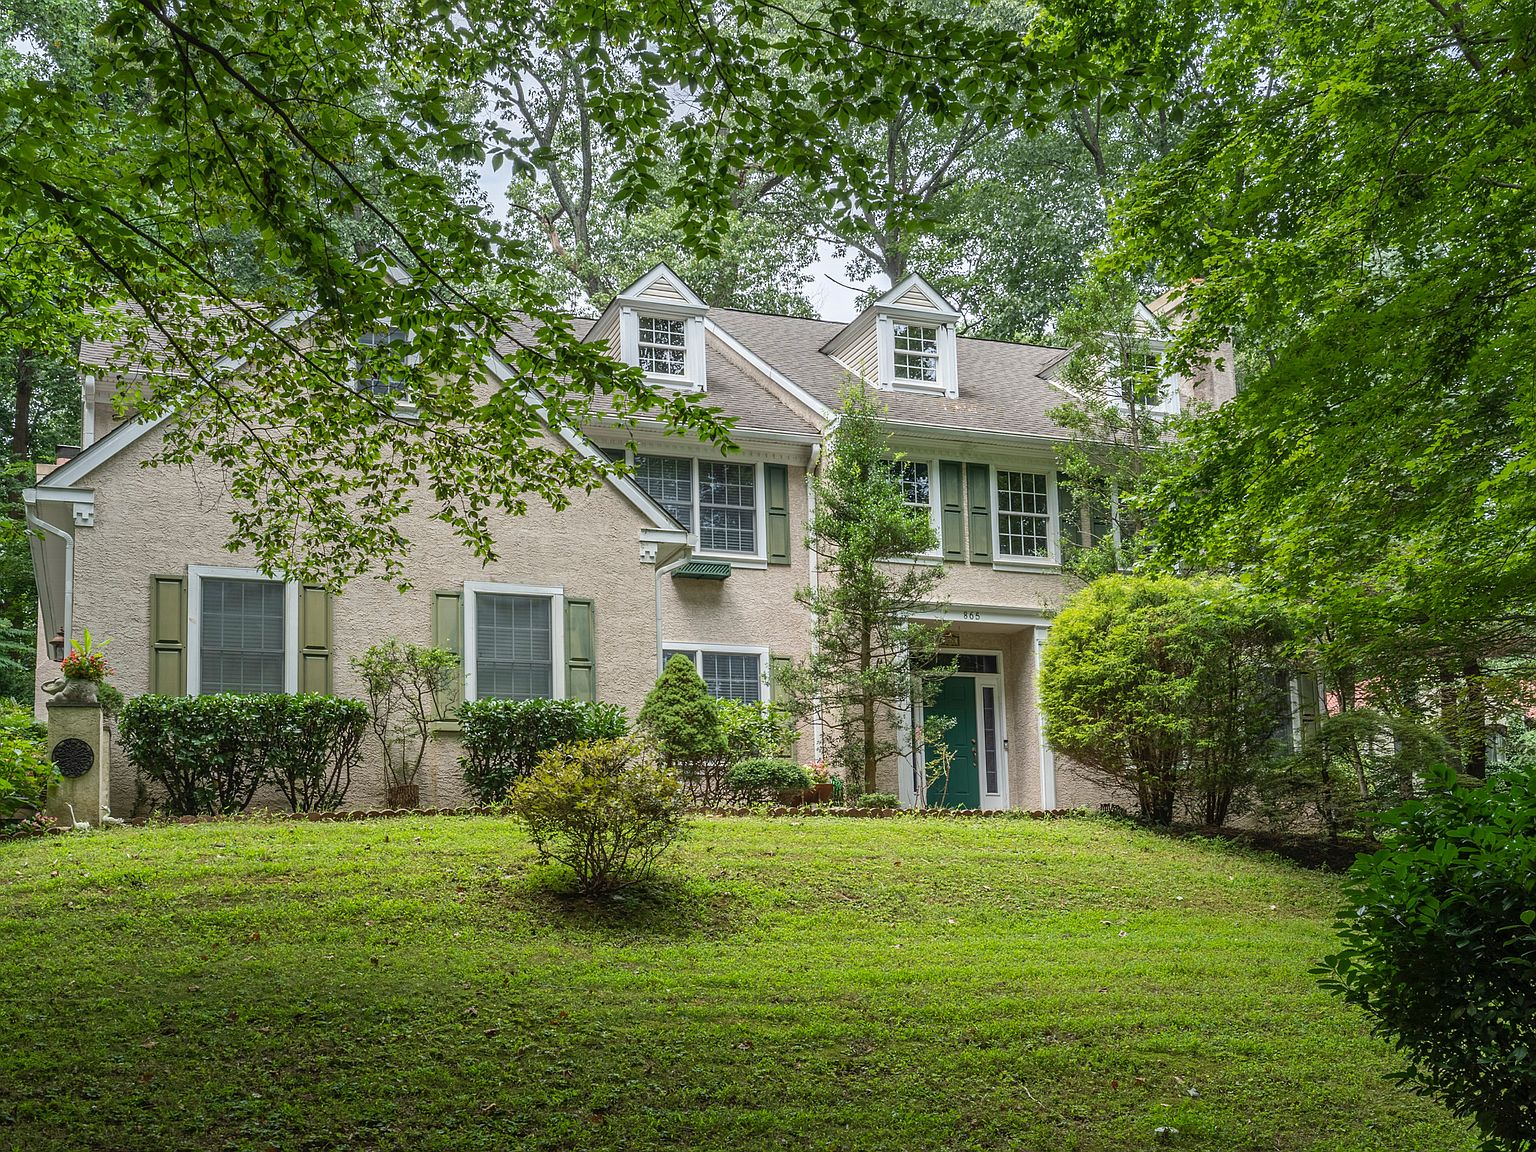 865 Bryn Mawr Ave Penn Valley Pa 19072 Zillow